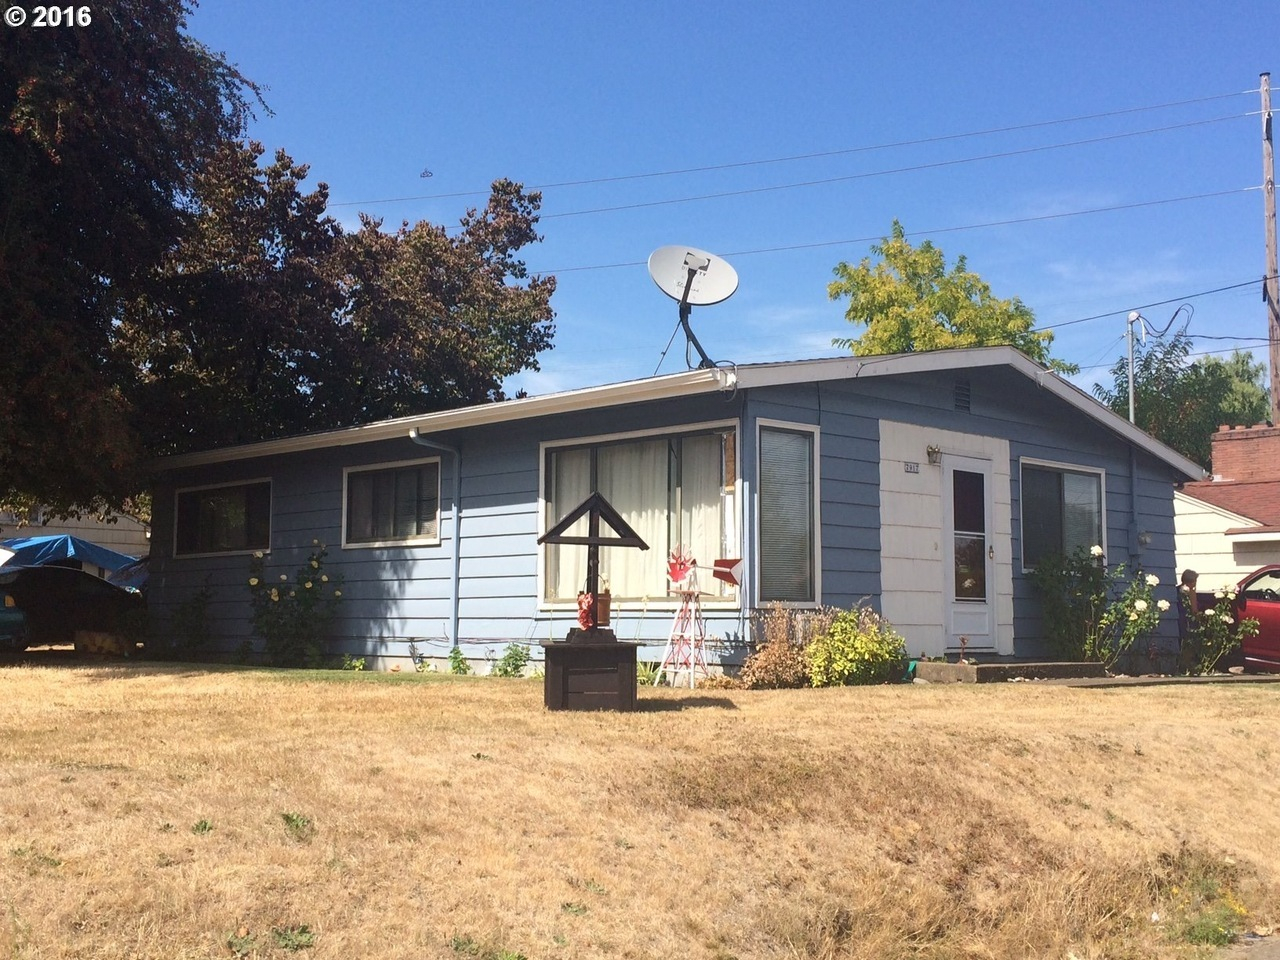 43 Henry 7917 N Wall Ave Portland Or 97203 Mls 16335570 Redfin